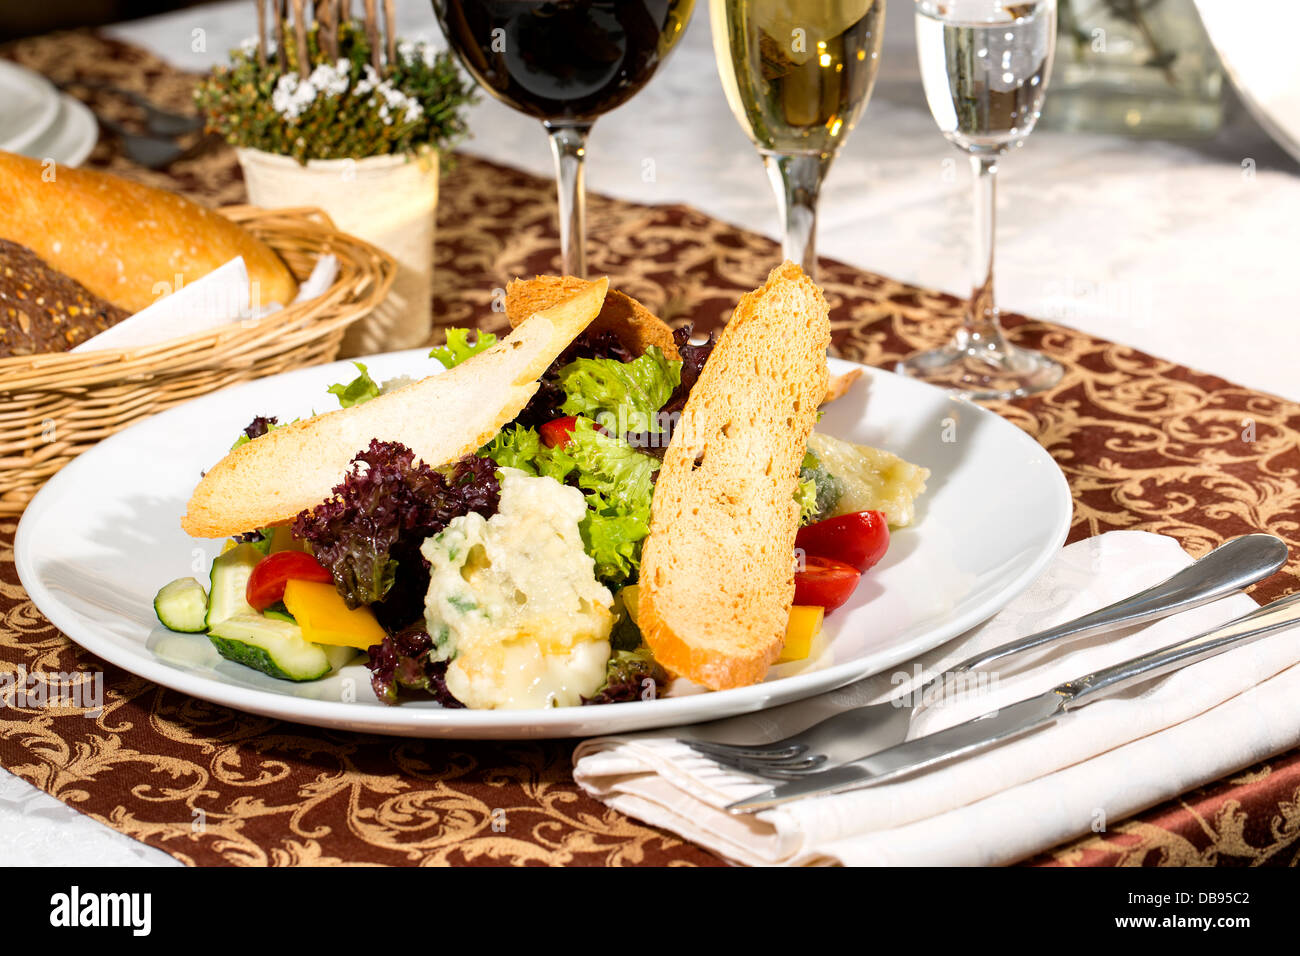 salad with cheese and meat on the table in a restaurant - Stock Image